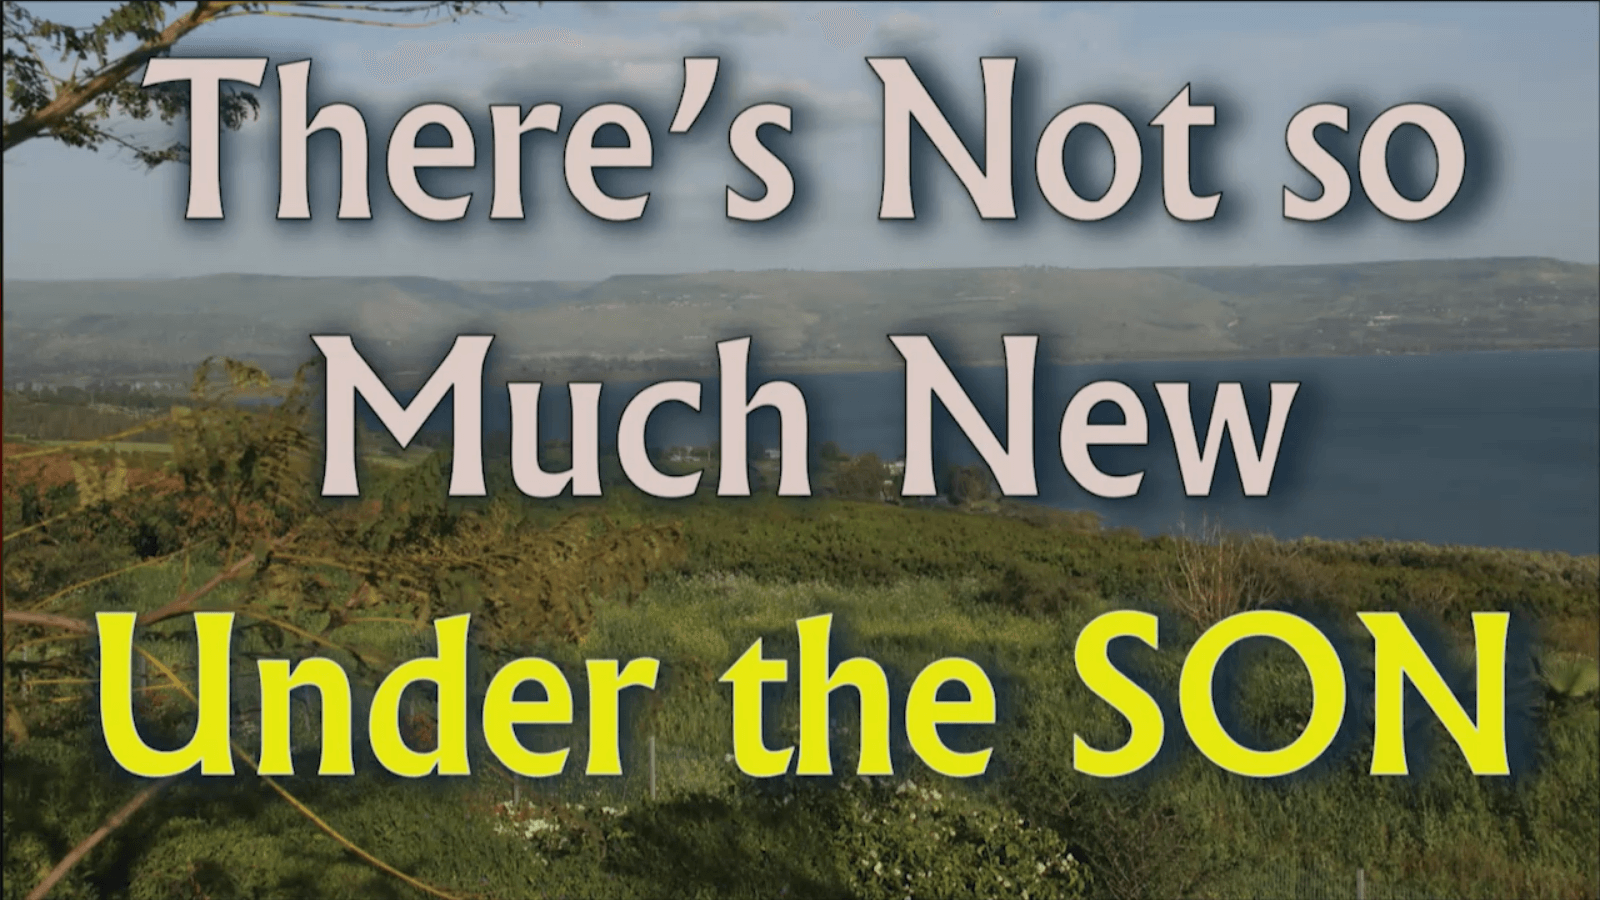 There's Not so Much New Under the SON